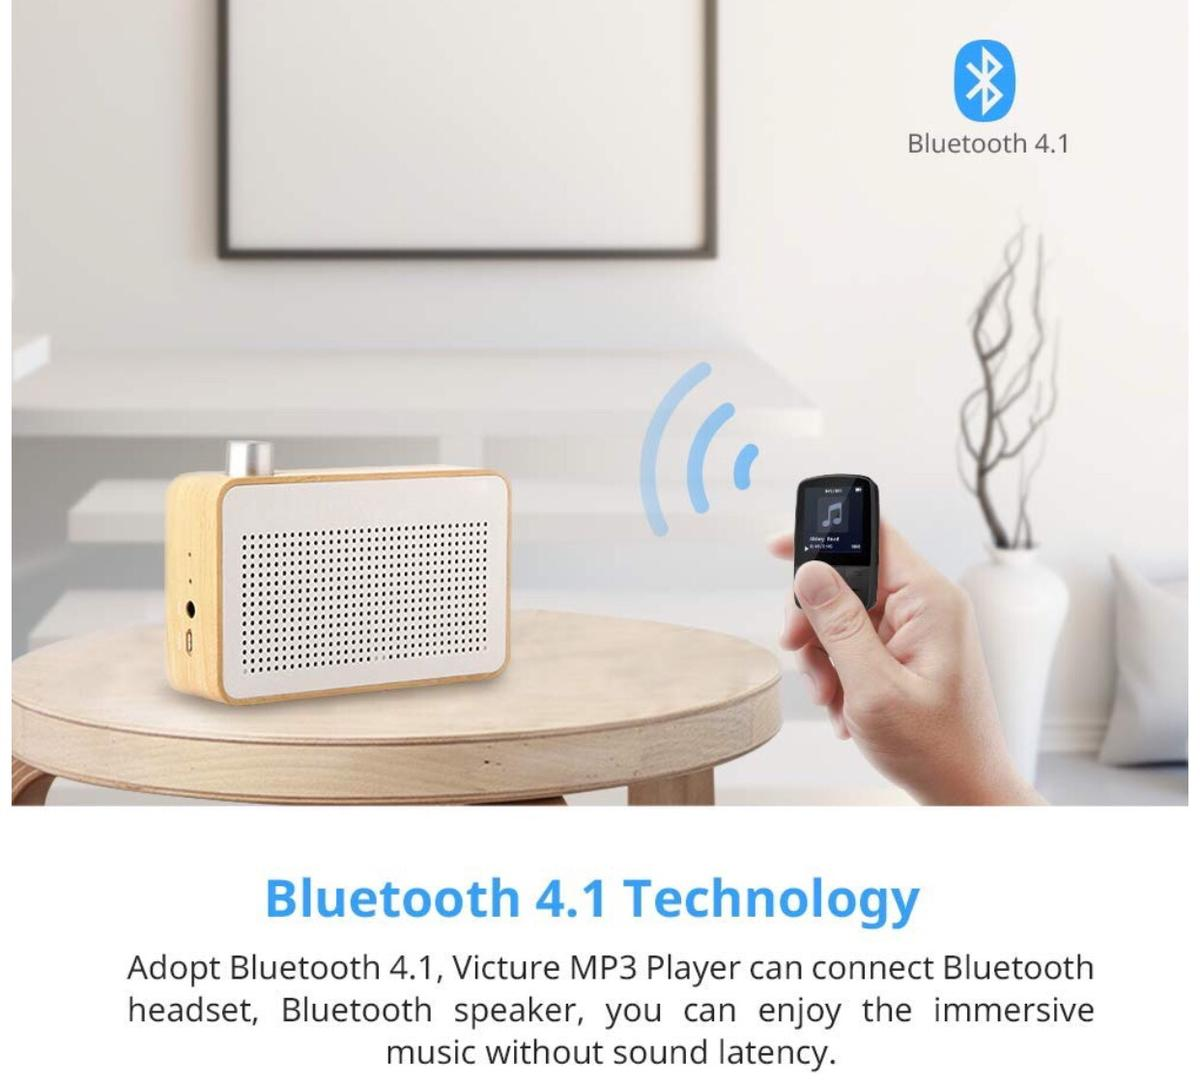 Compact clip design. Match Bluetooth headsets for sports. Match the connected speakers anywhere.